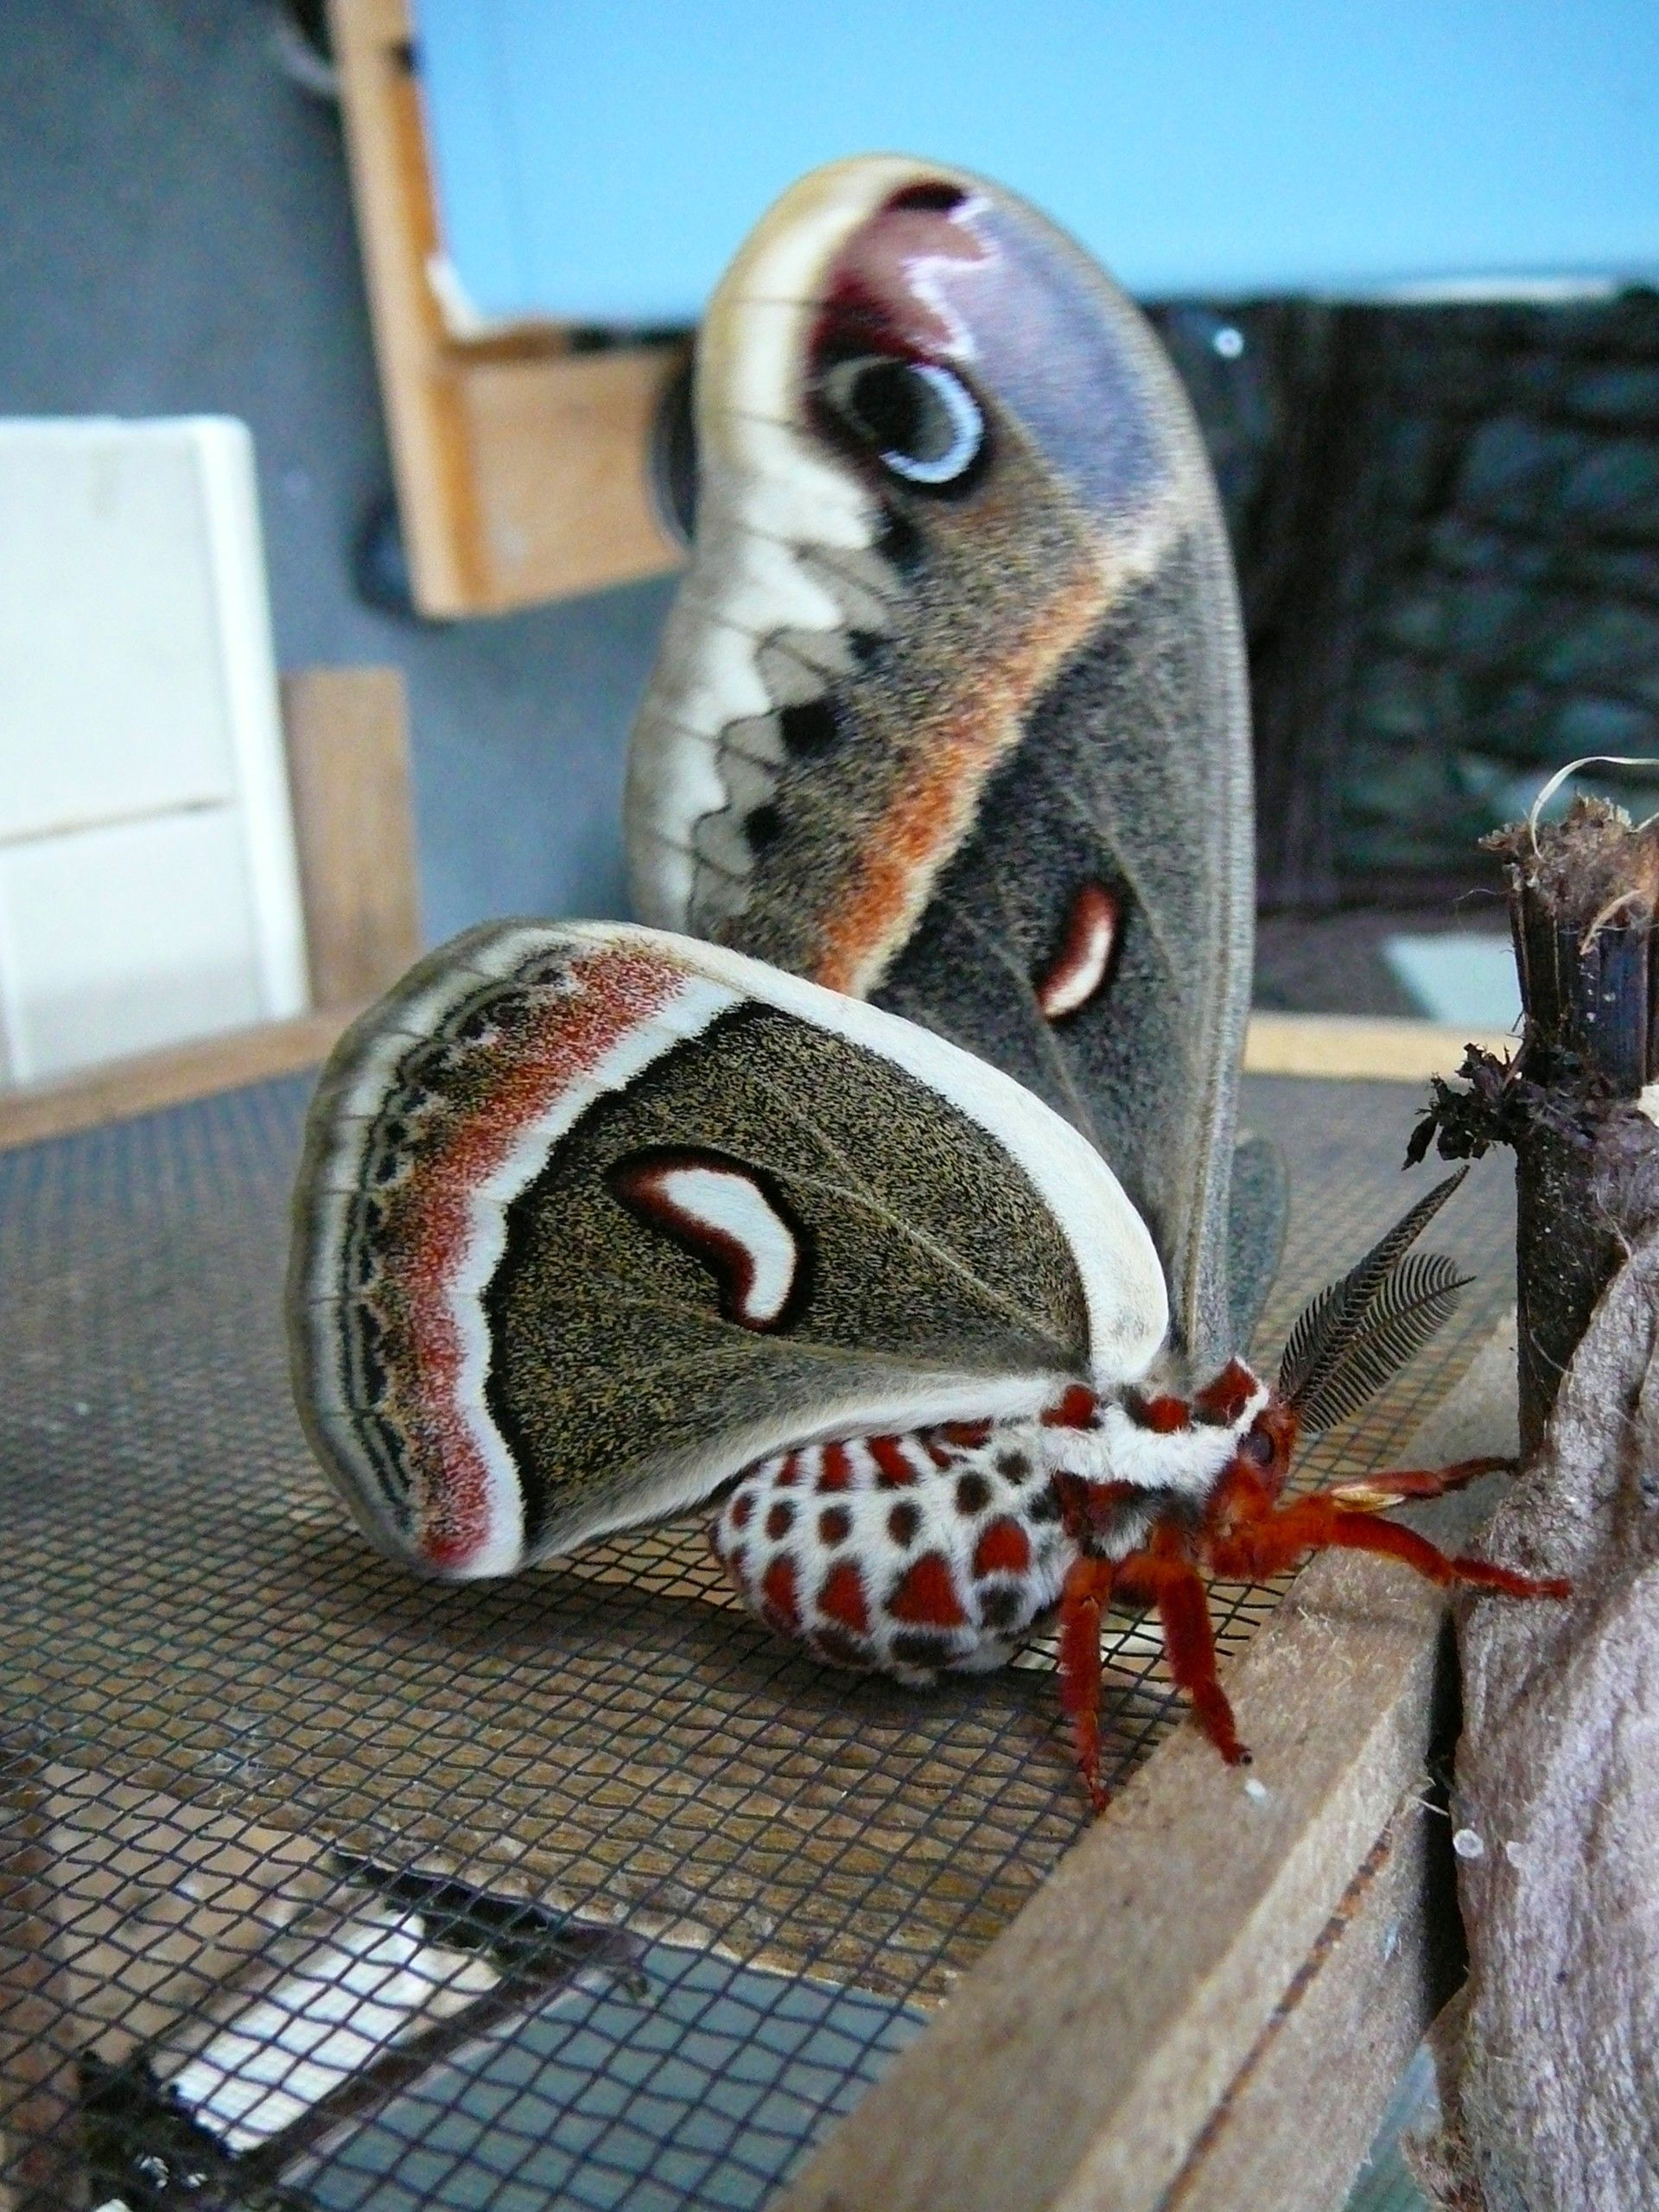 The Cecropia Moth is a beautiful creature seldom seen by the average citizen.